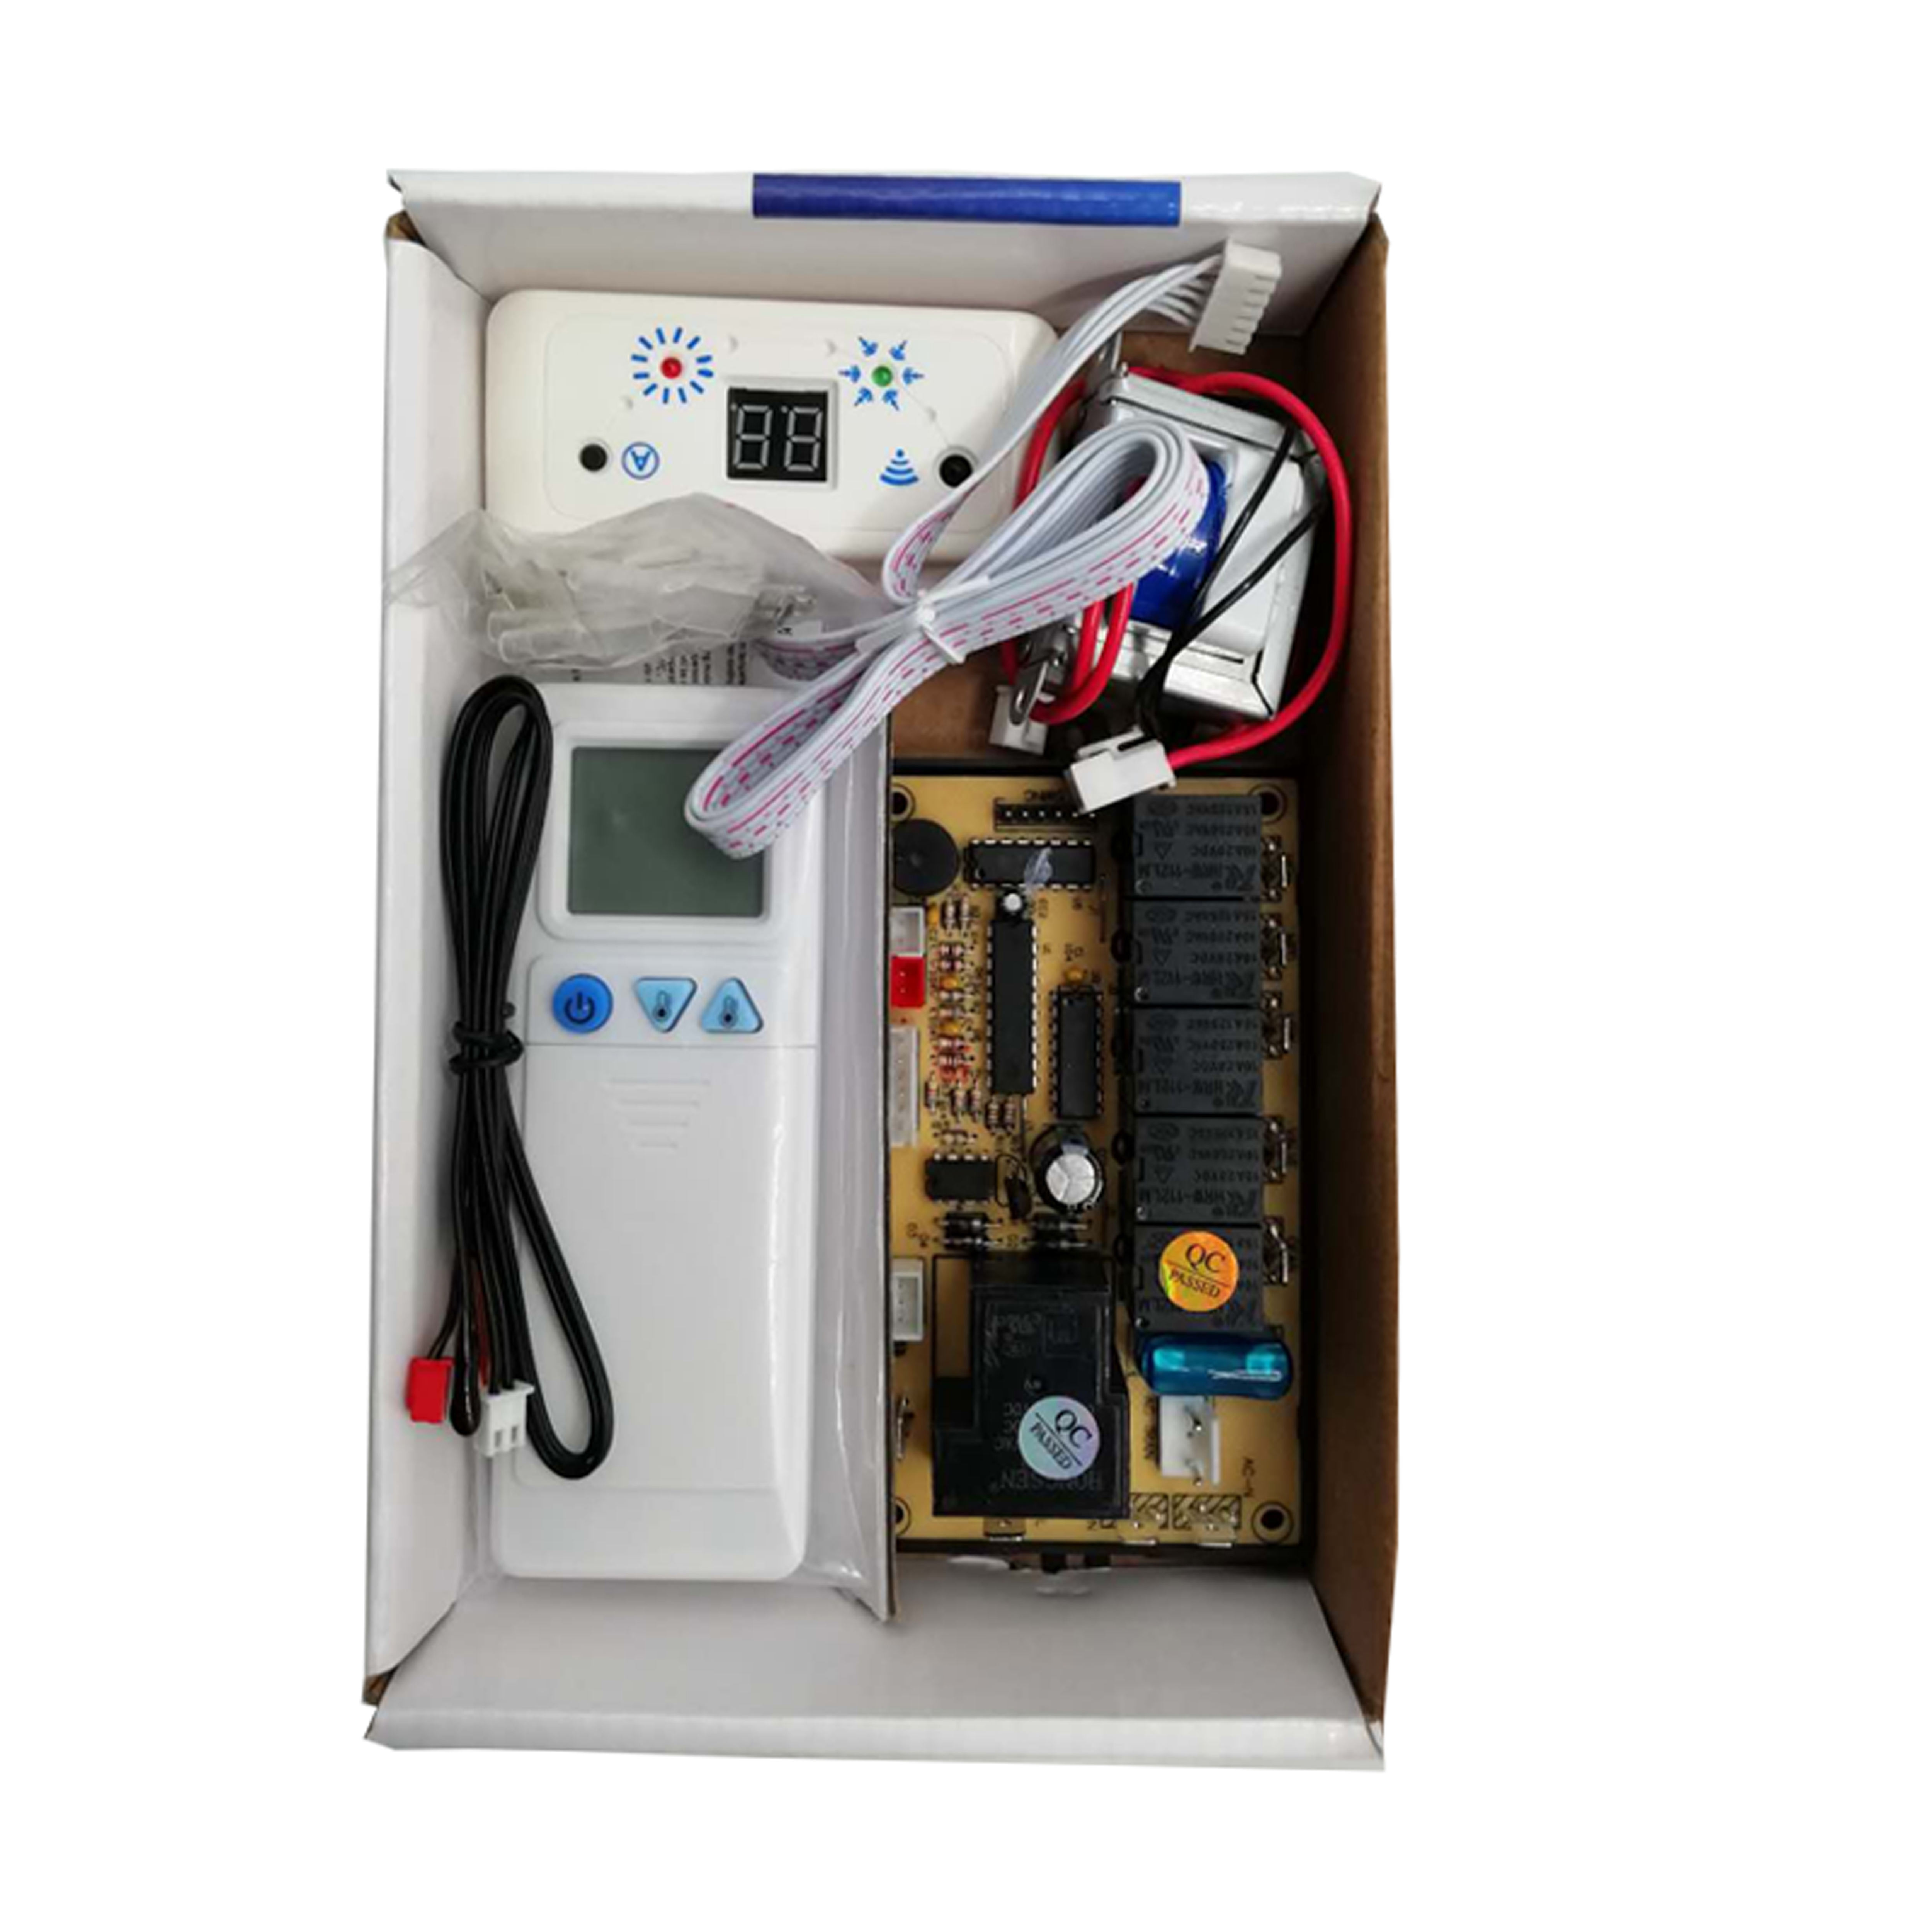 Circuit board QD-U08C Universal Air Conditioner Remote system, Universal ac control system with AC remote controller